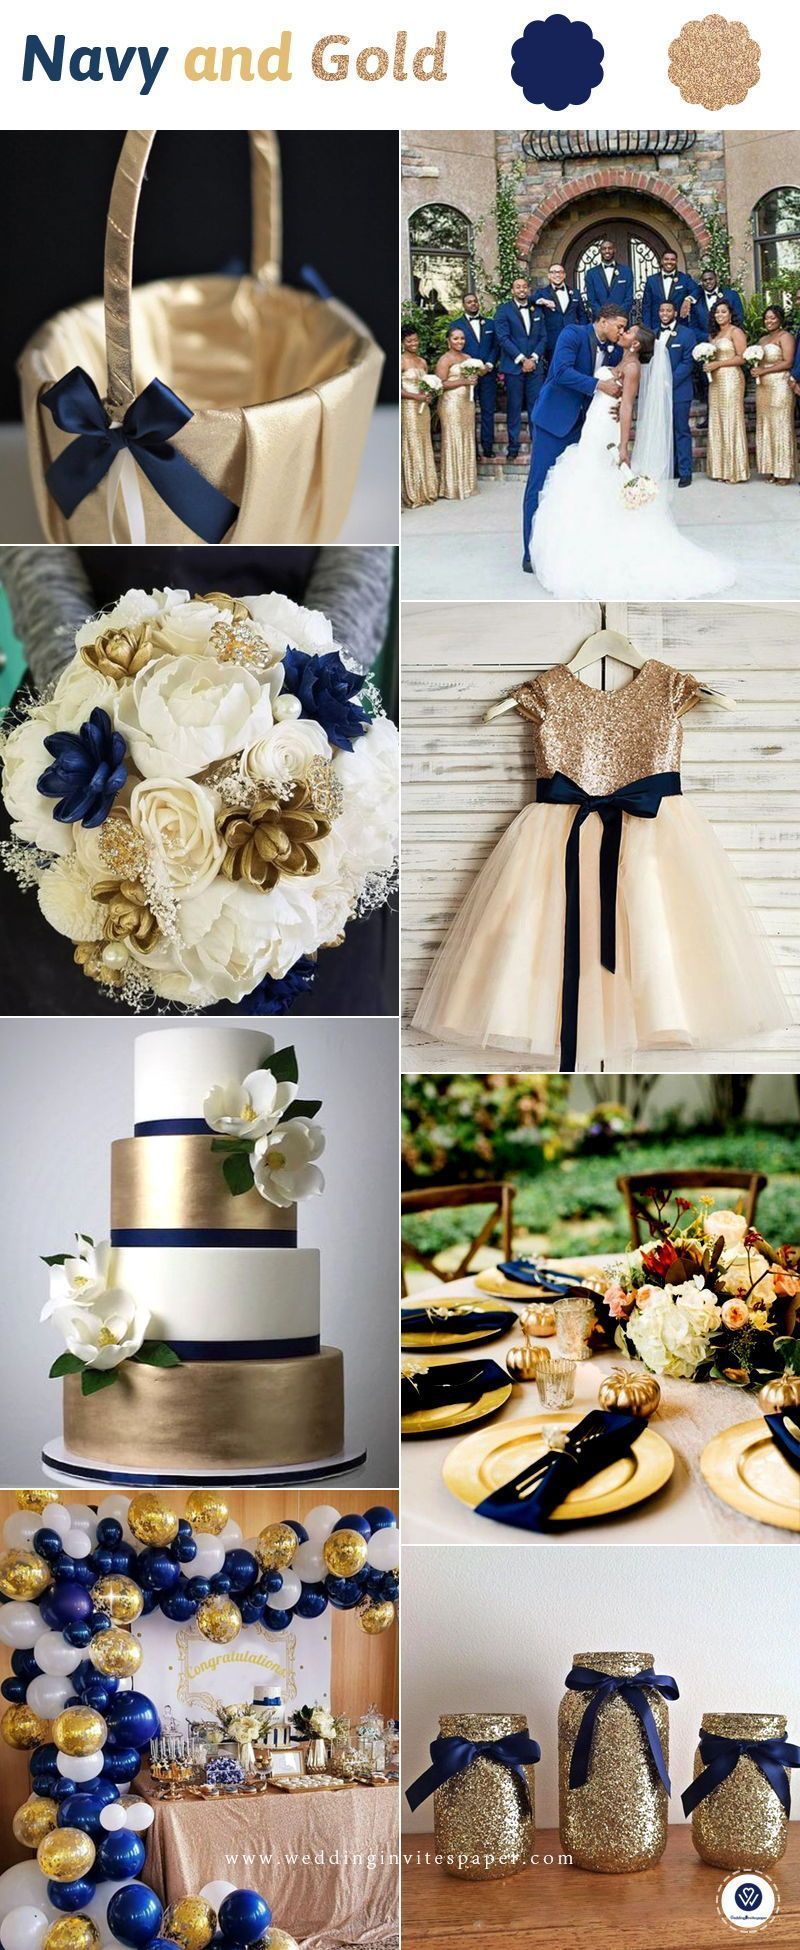 Top 8 Striking Navy Blue Wedding Color Palettes for 2019 Fall—navy blue and gold, wedding d…